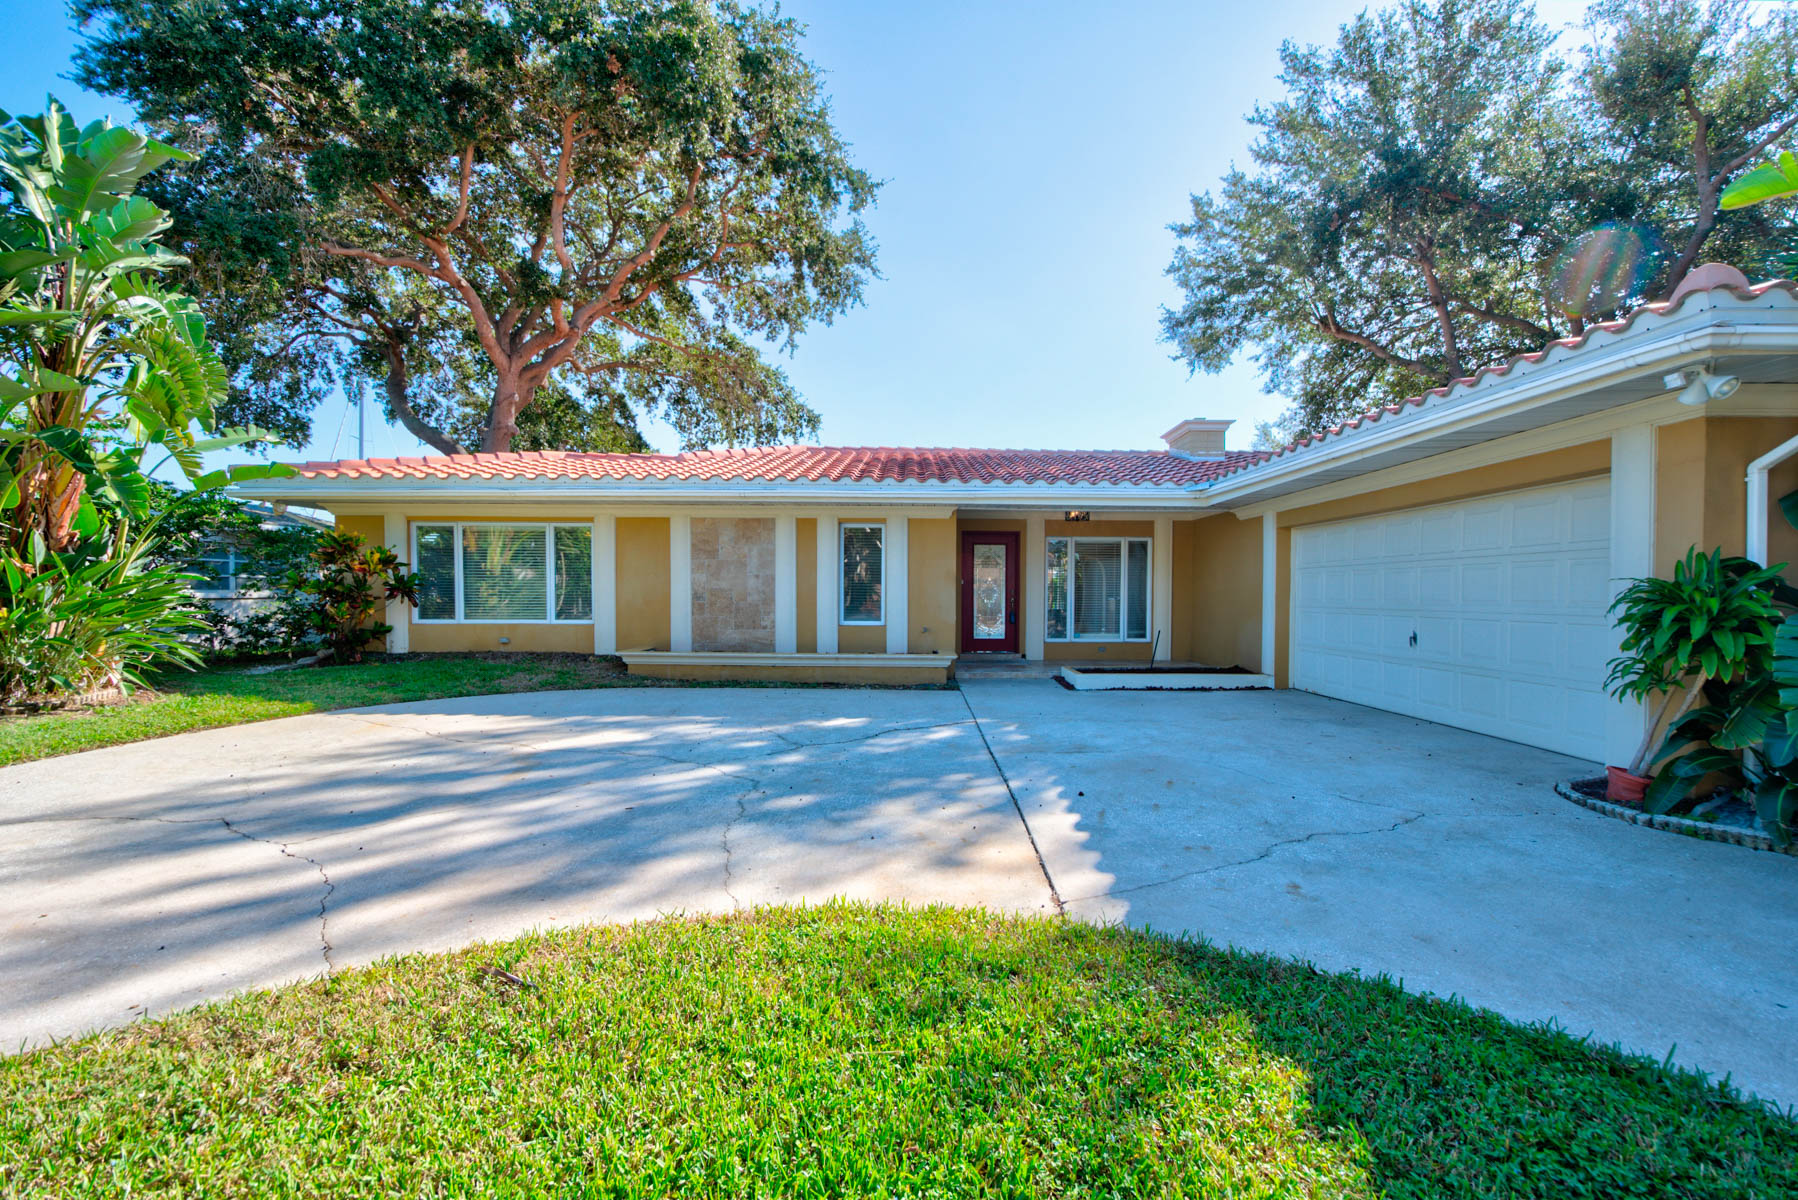 NEW TO THE MARKET: 125 LEEWARD ISLAND, CLEARWATER BEACH FL 33767